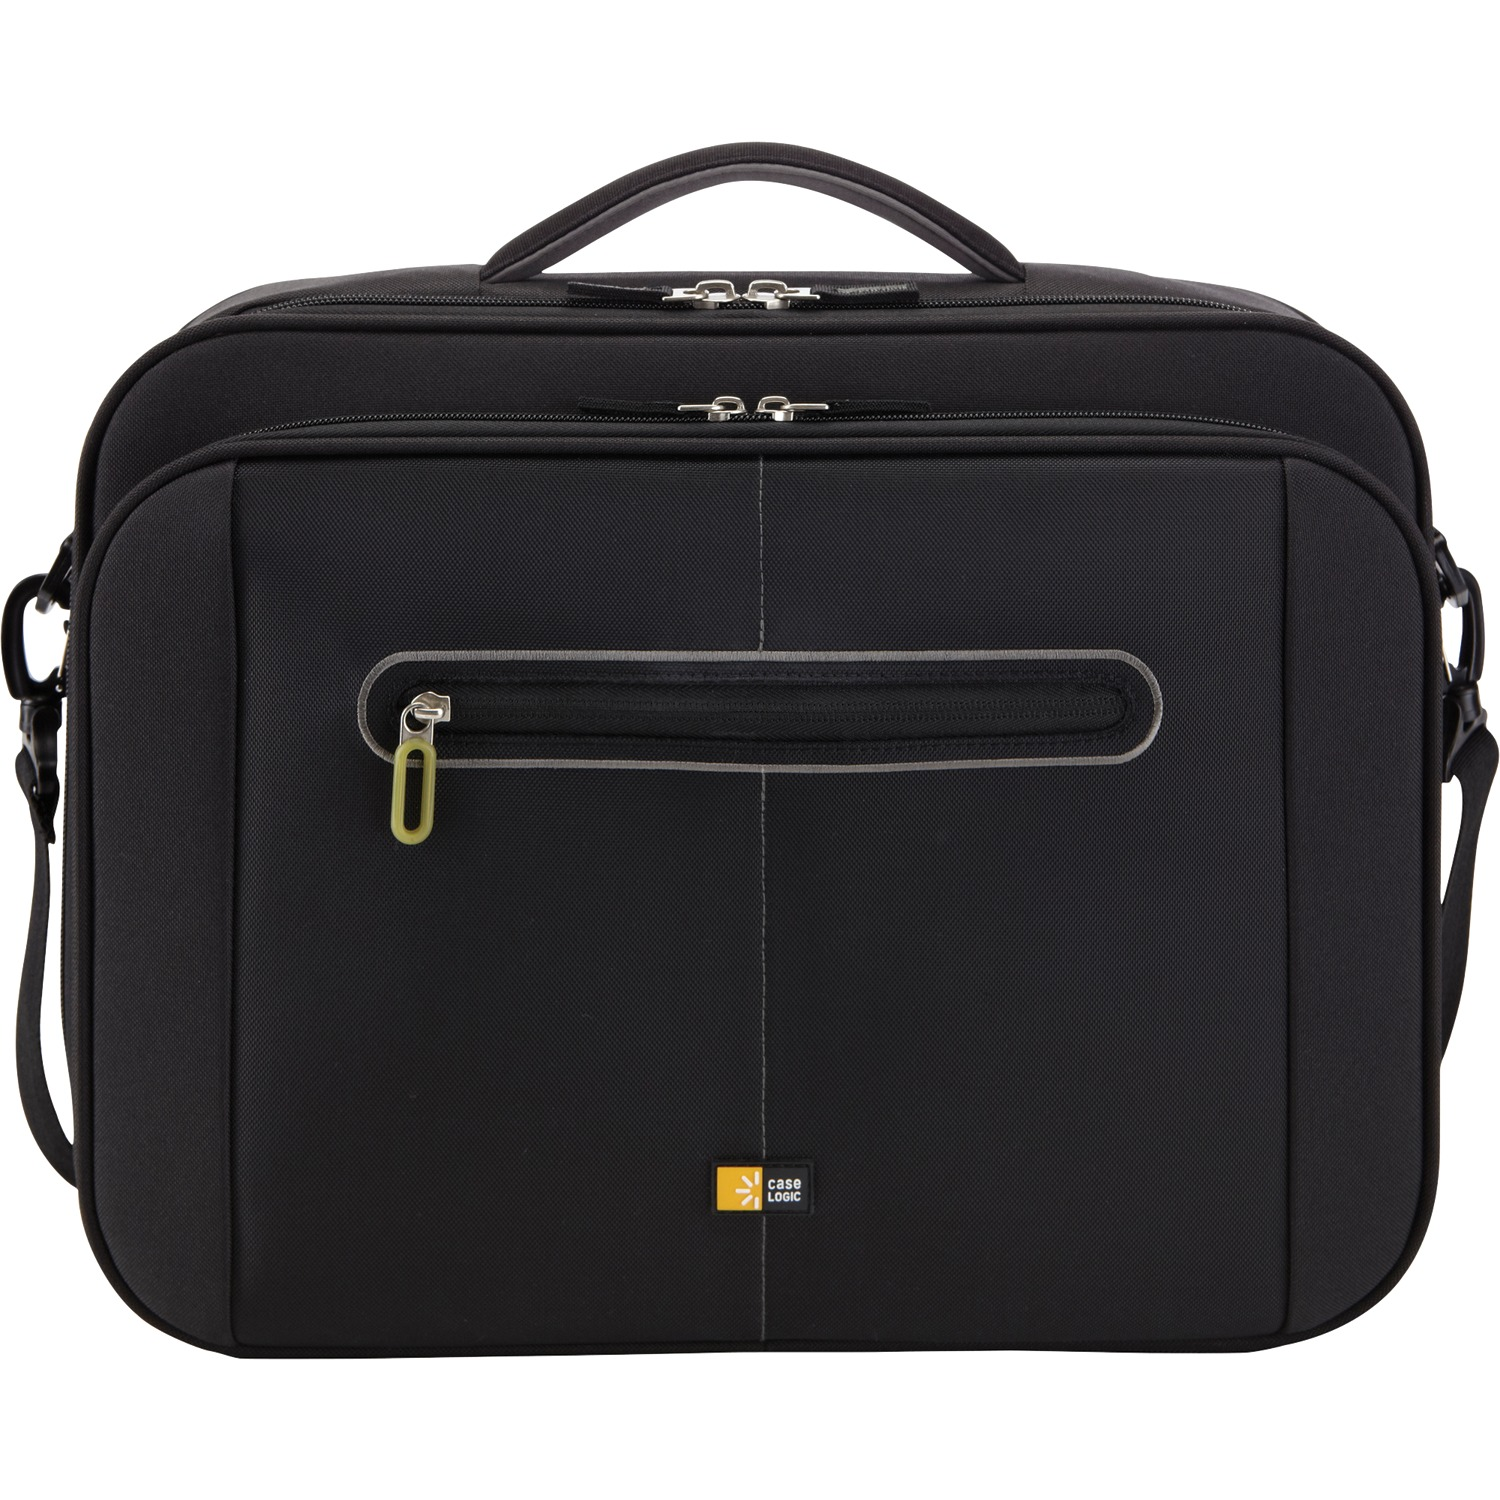 "Case Logic 3201207 16"" Track Clamshell Laptop Briefcase"